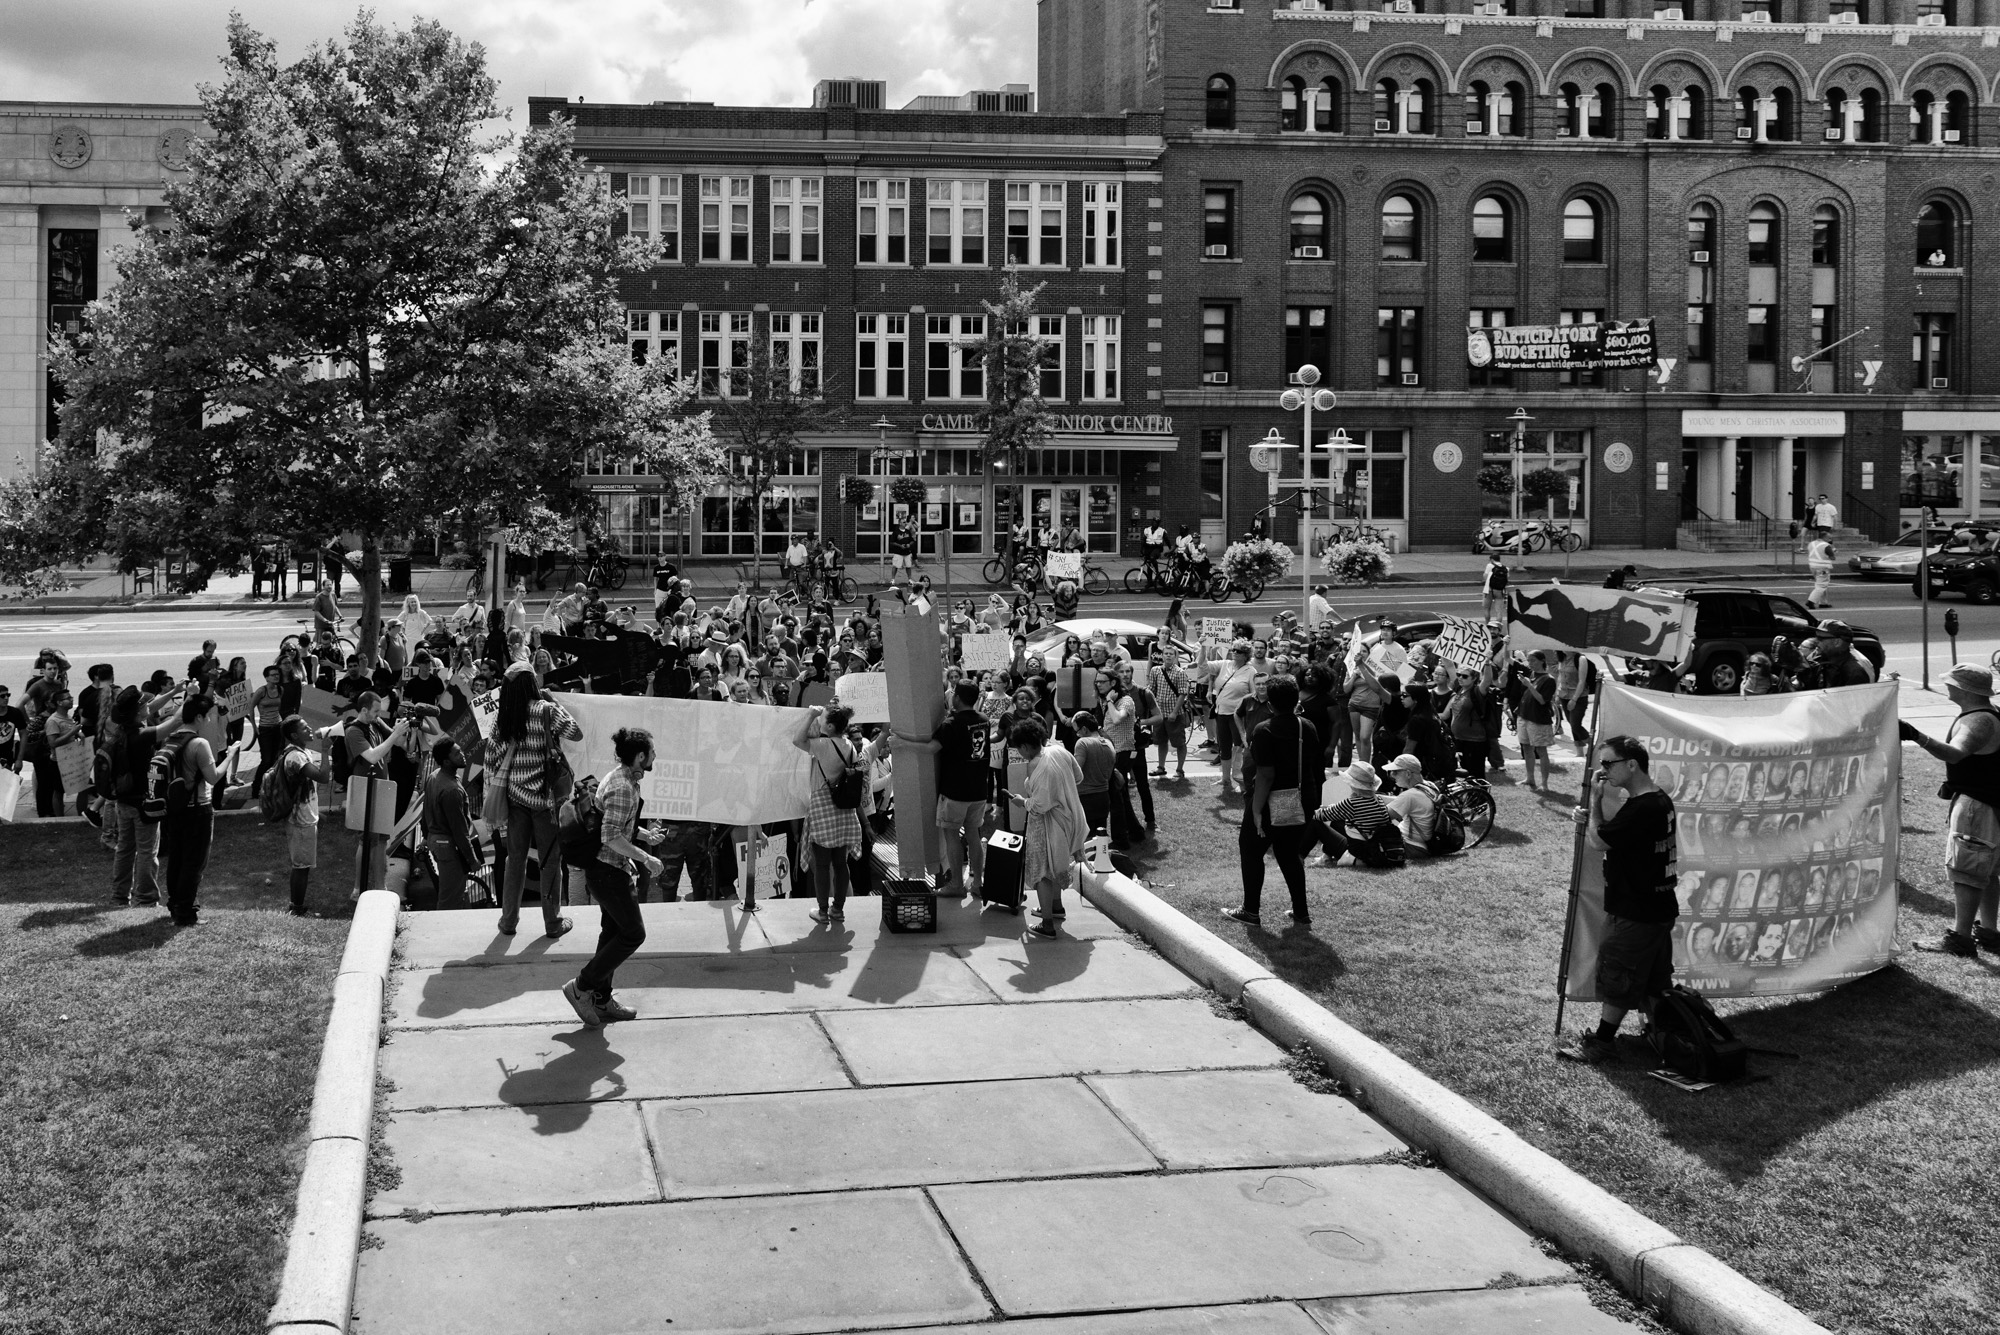 One of several stops during the march for speeches. This is on Mass. Ave. in front of Cambridge City Hall